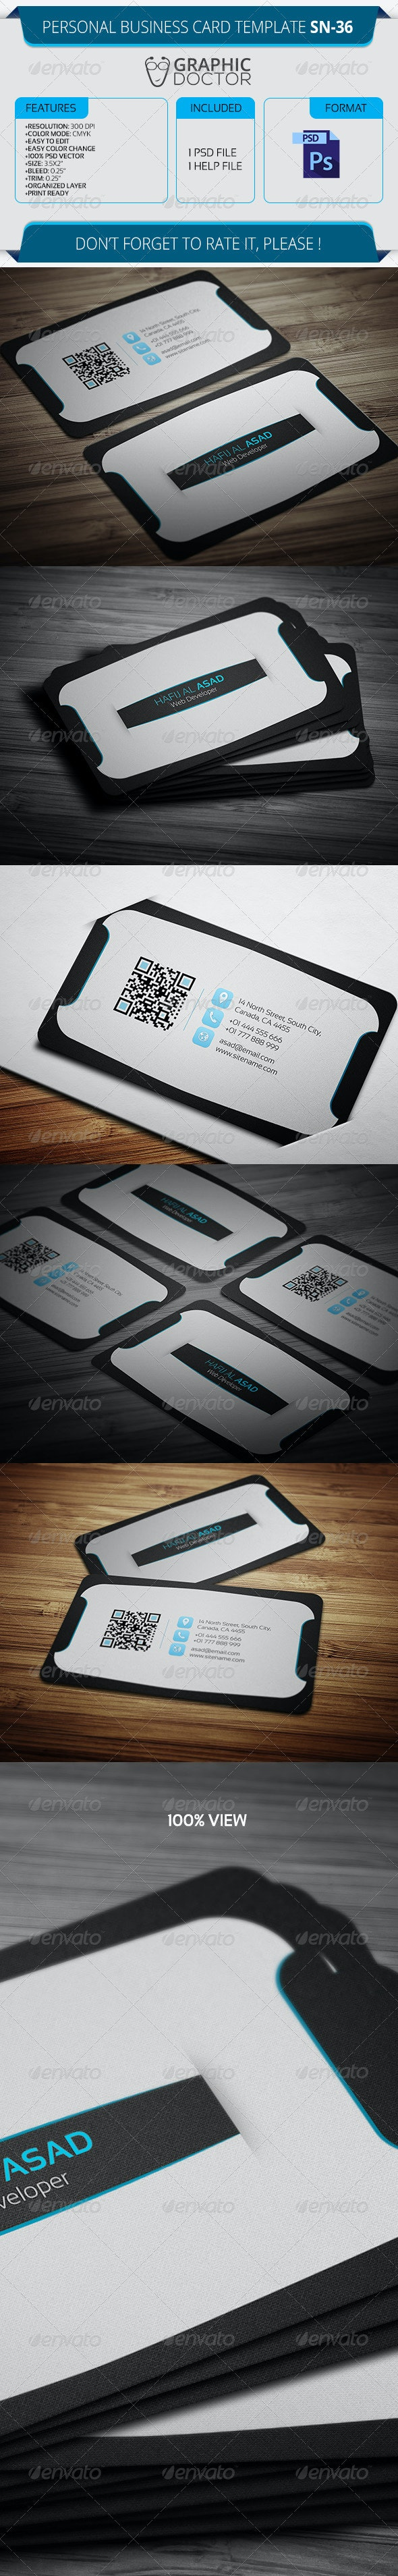 Personal Business Card Template SN-36 - Corporate Business Cards